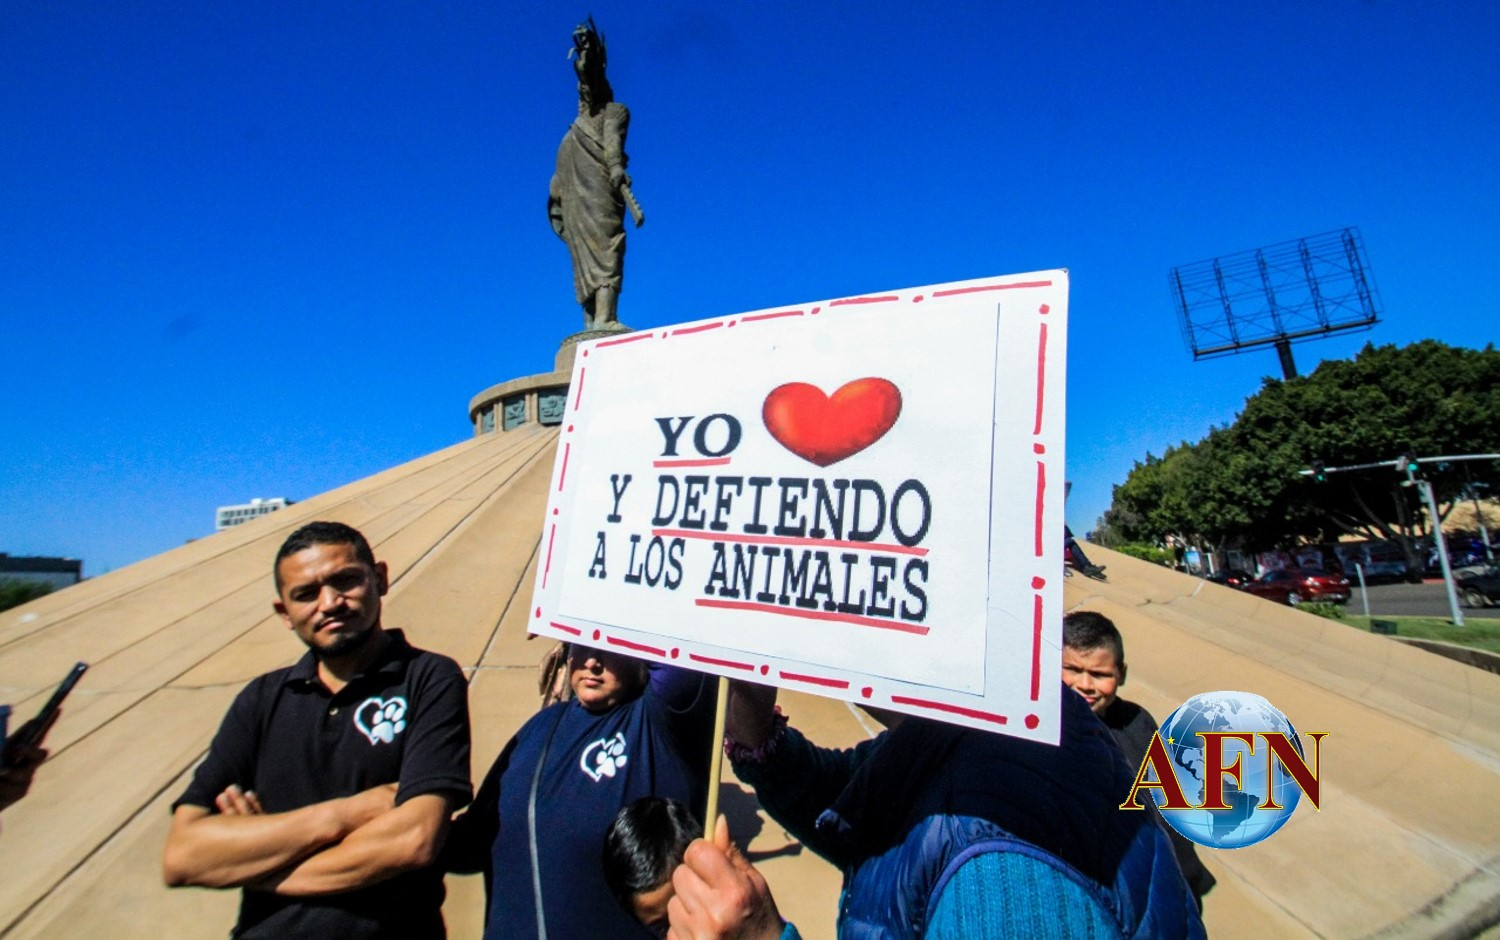 Protestan contra el maltrato animal